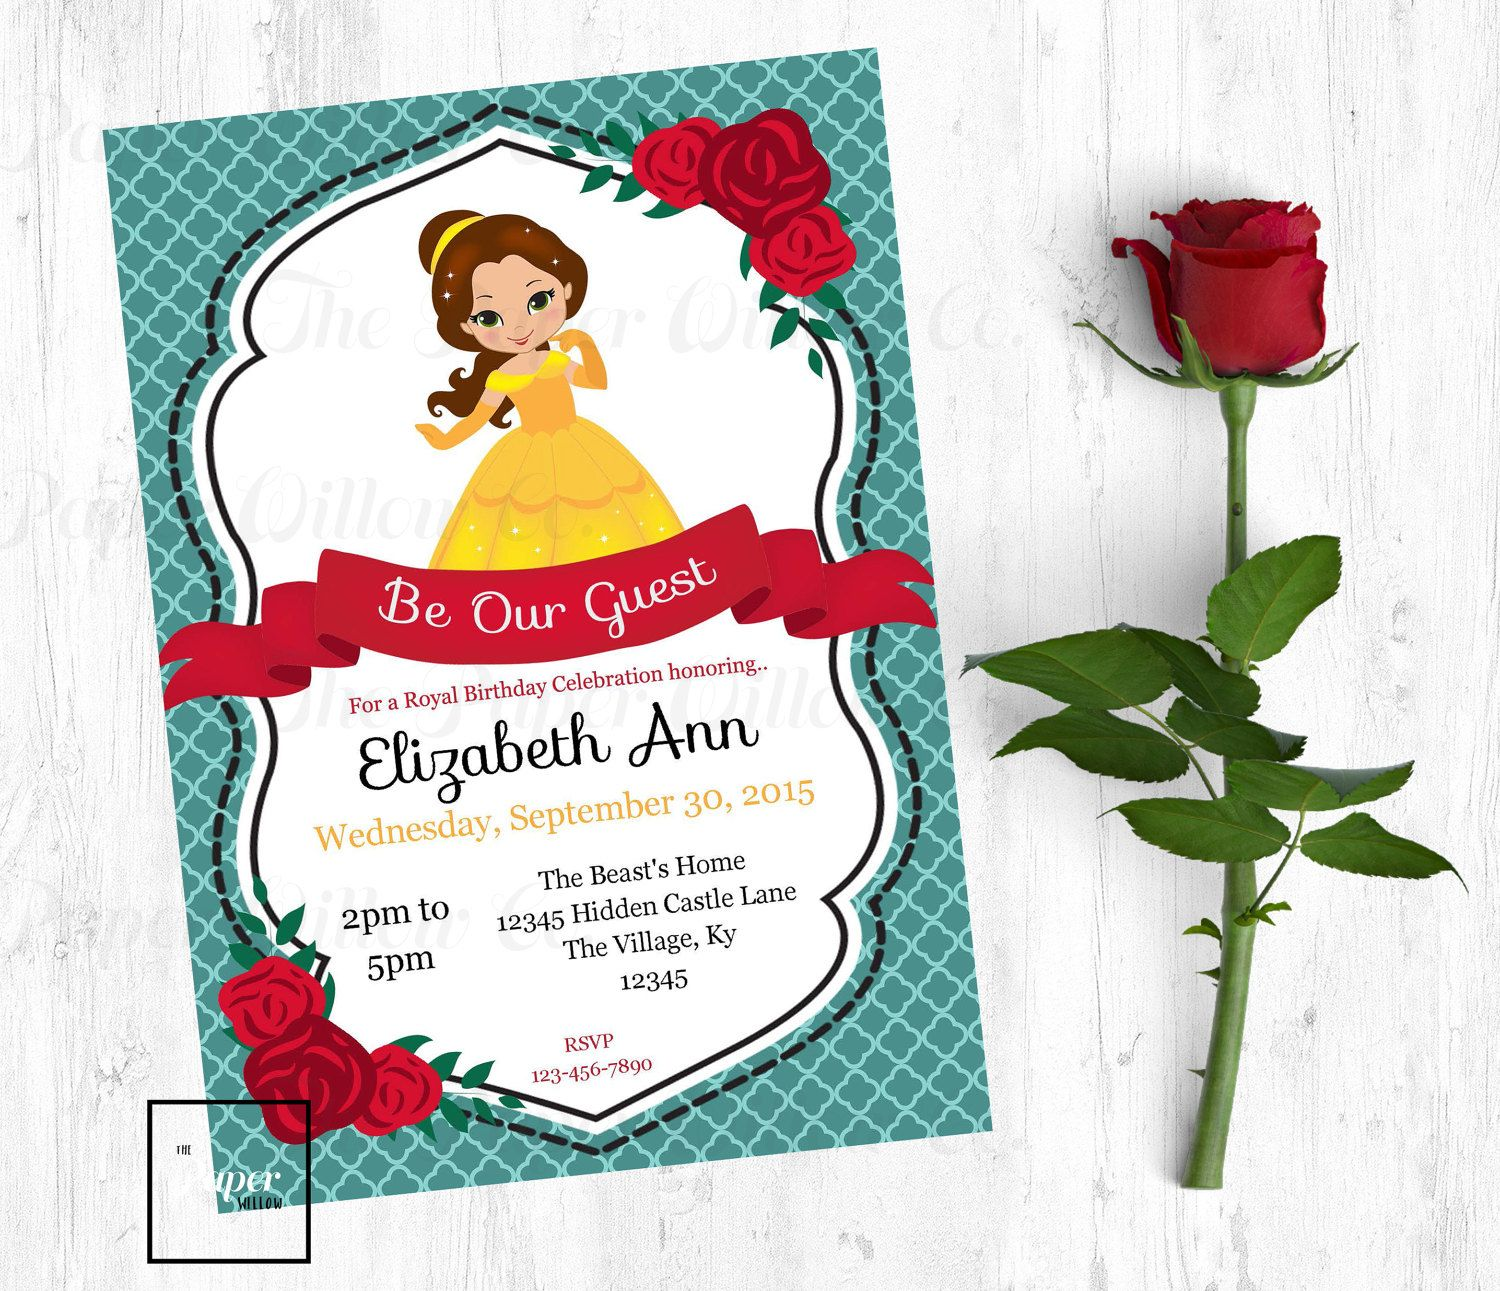 a belle s birthday printable invitation birthday party invite a belle s birthday printable invitation birthday party invite instant editable pdf